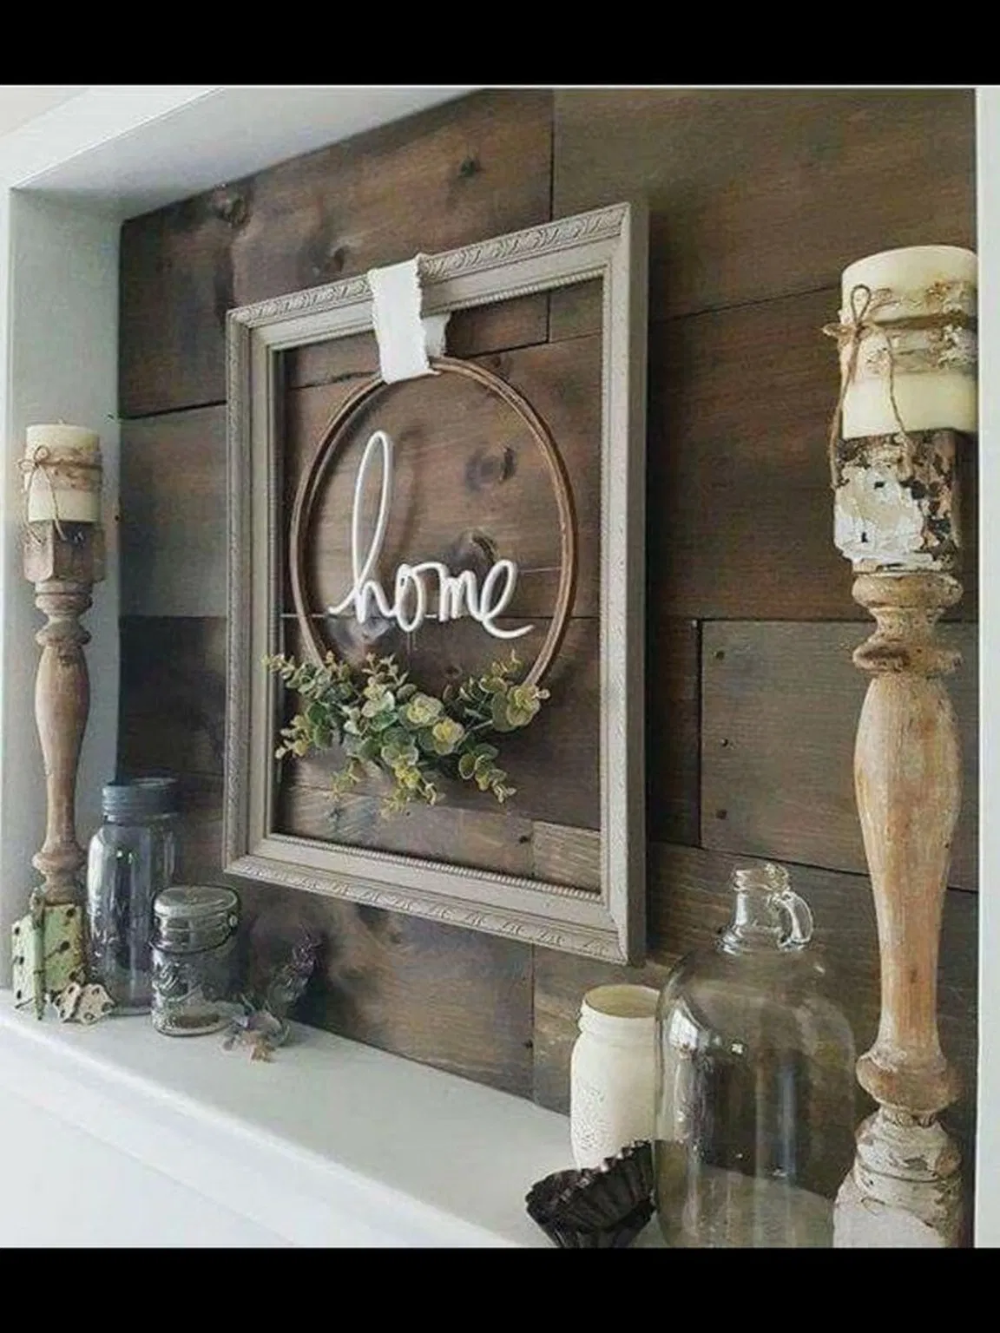 65 Inspiring Wall Decor Ideas For Your Living Room 2020 1 In 2020